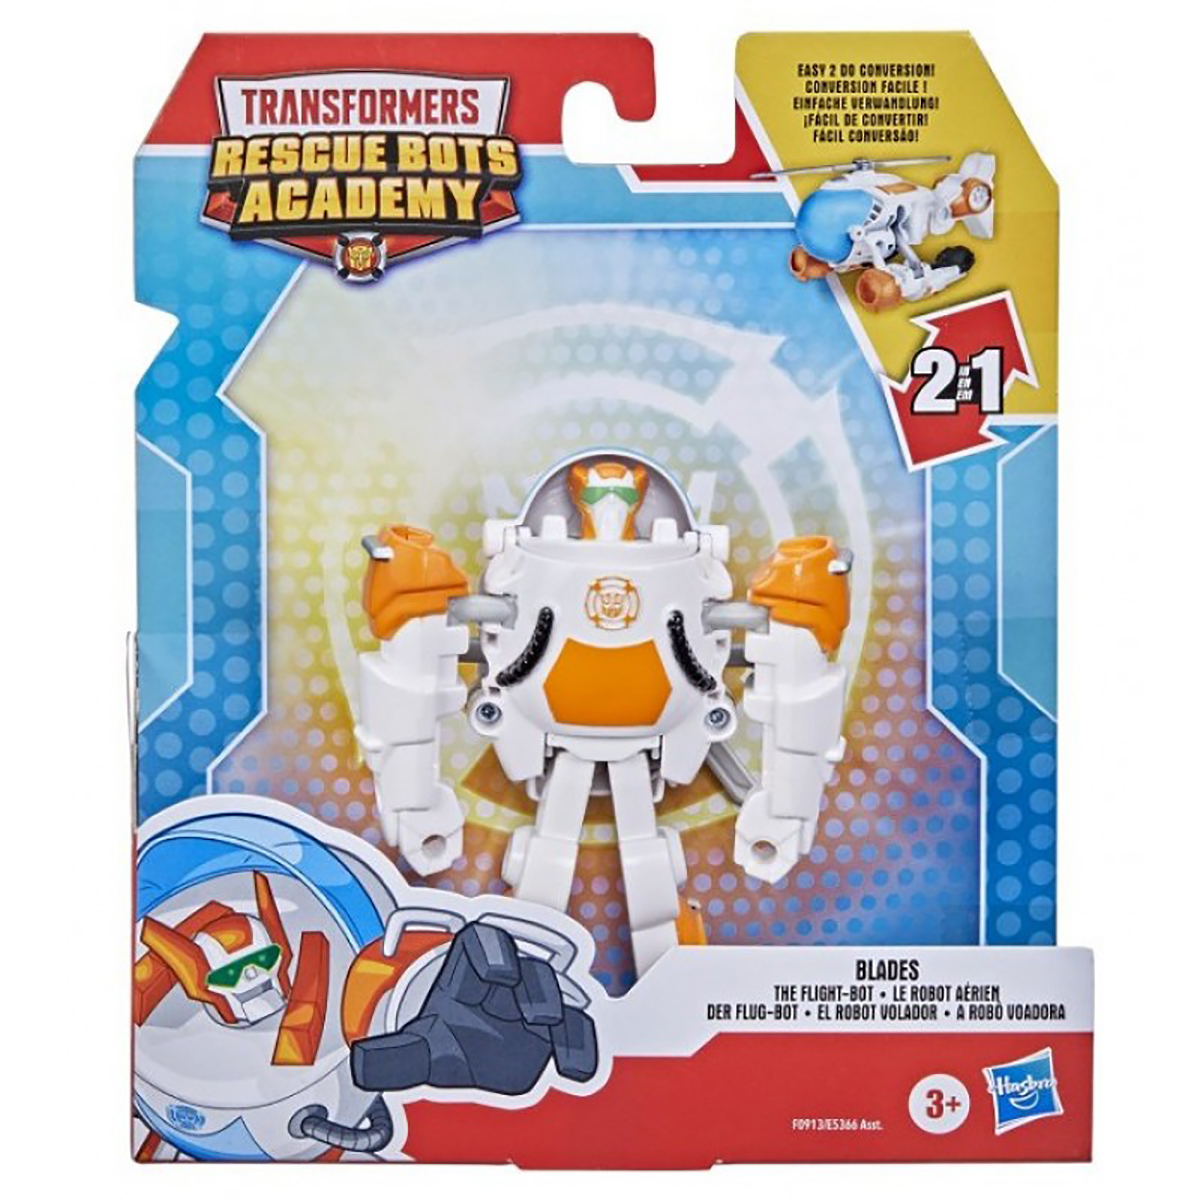 Figurina Transformers Rescue Bots Academy, Blades, The Flight-Bot, F0913